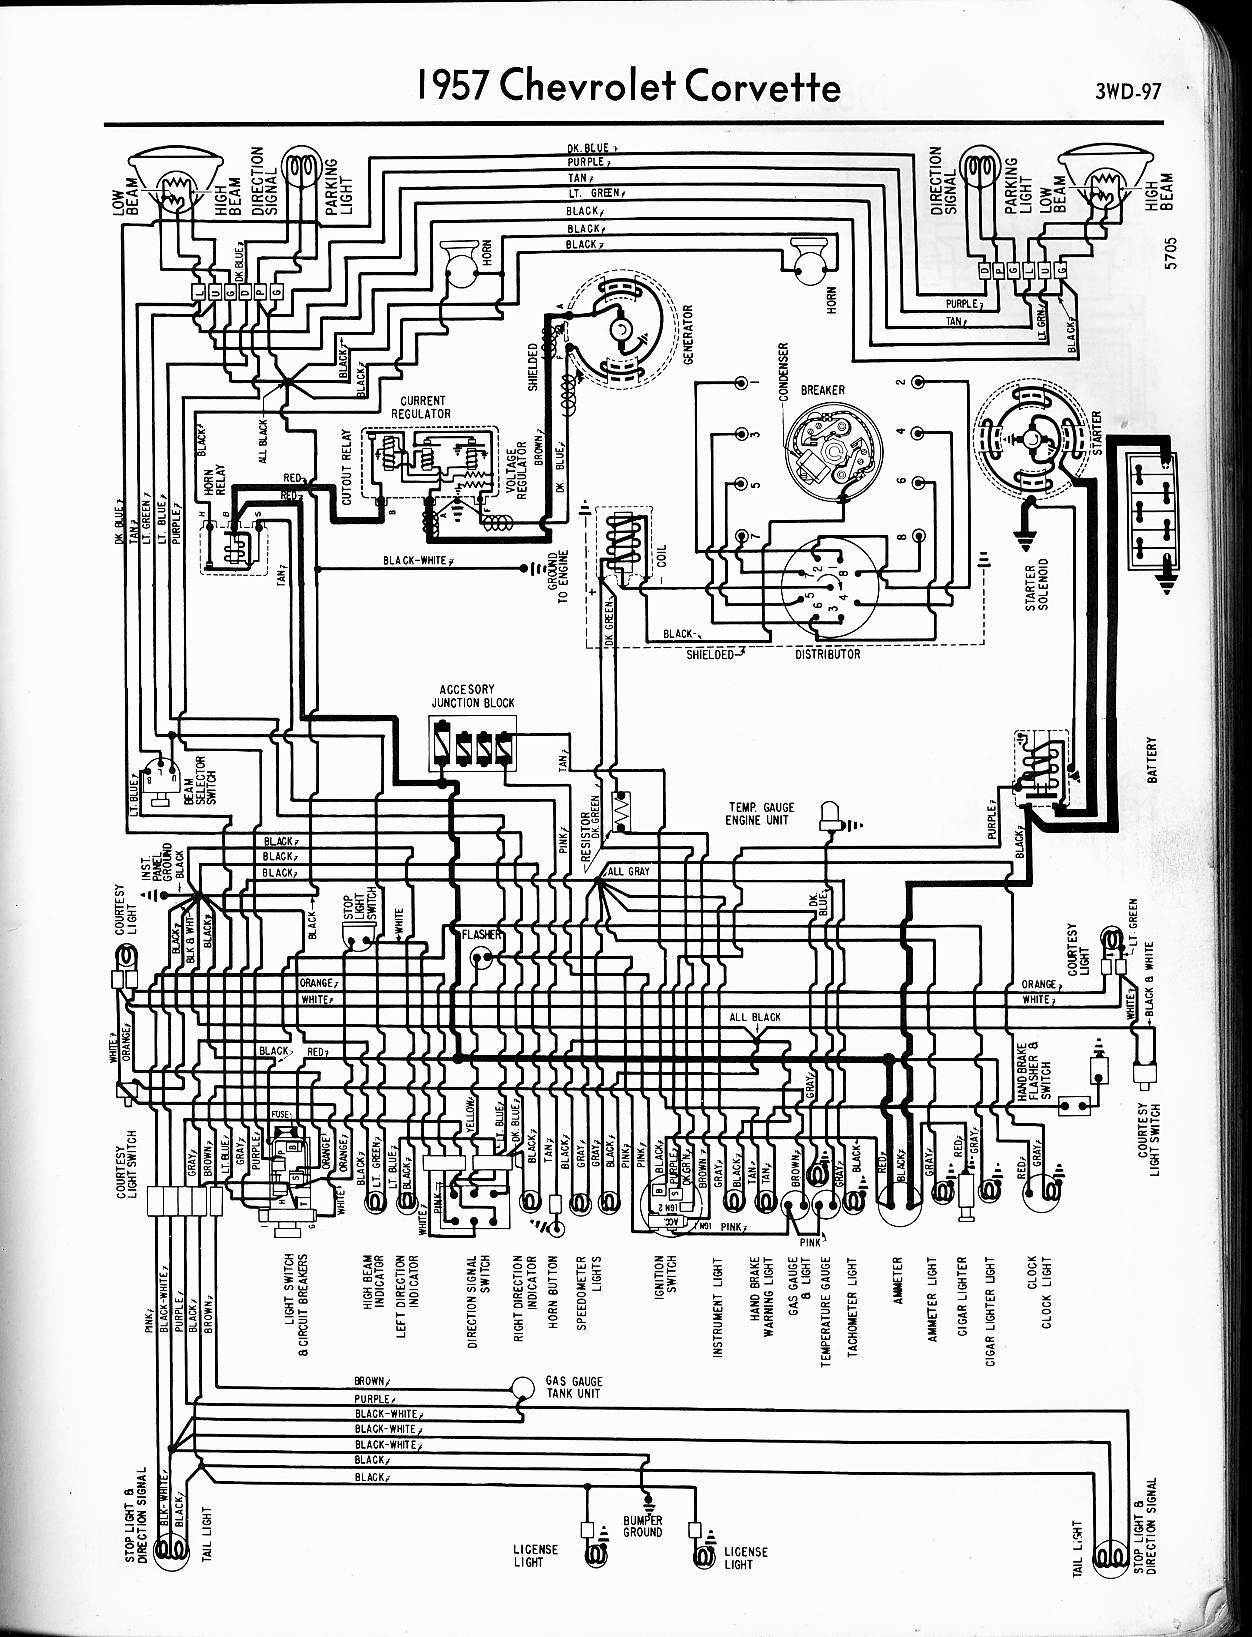 MWireChev57_3WD 097 57 65 chevy wiring diagrams manual motor starter wiring diagram at virtualis.co